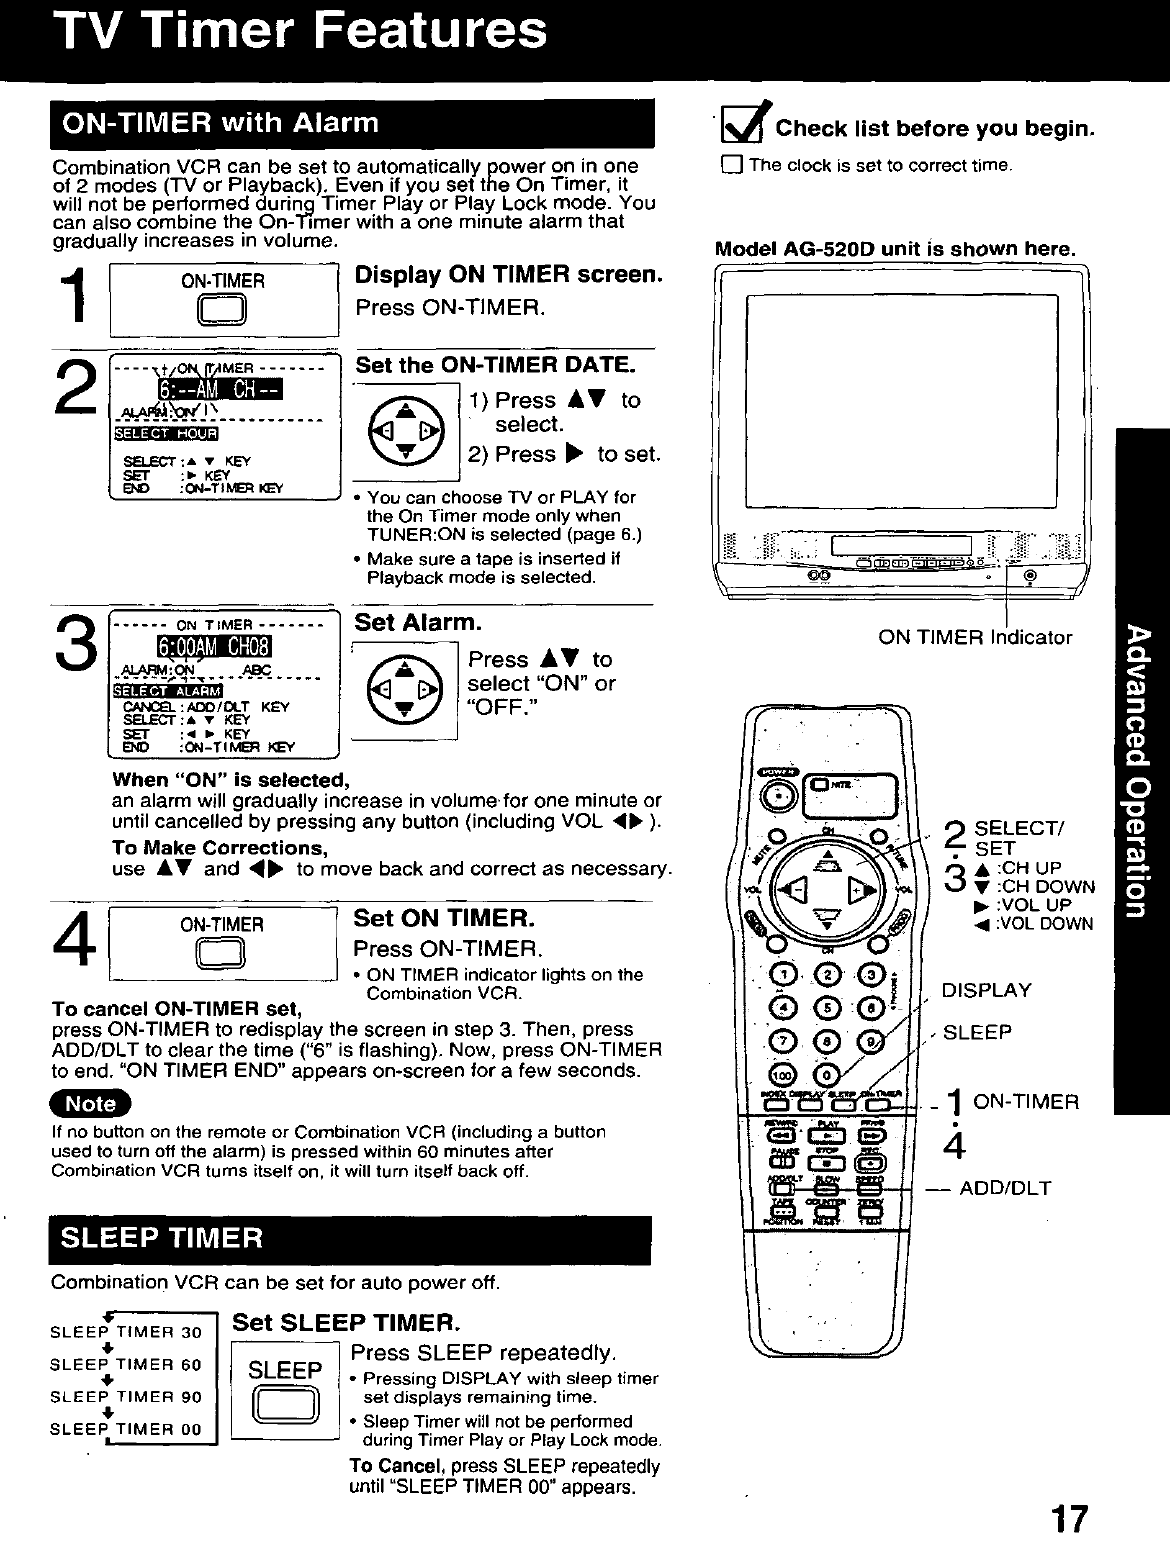 Page 17 of Panasonic TV VCR Combo AG-513D User Guide